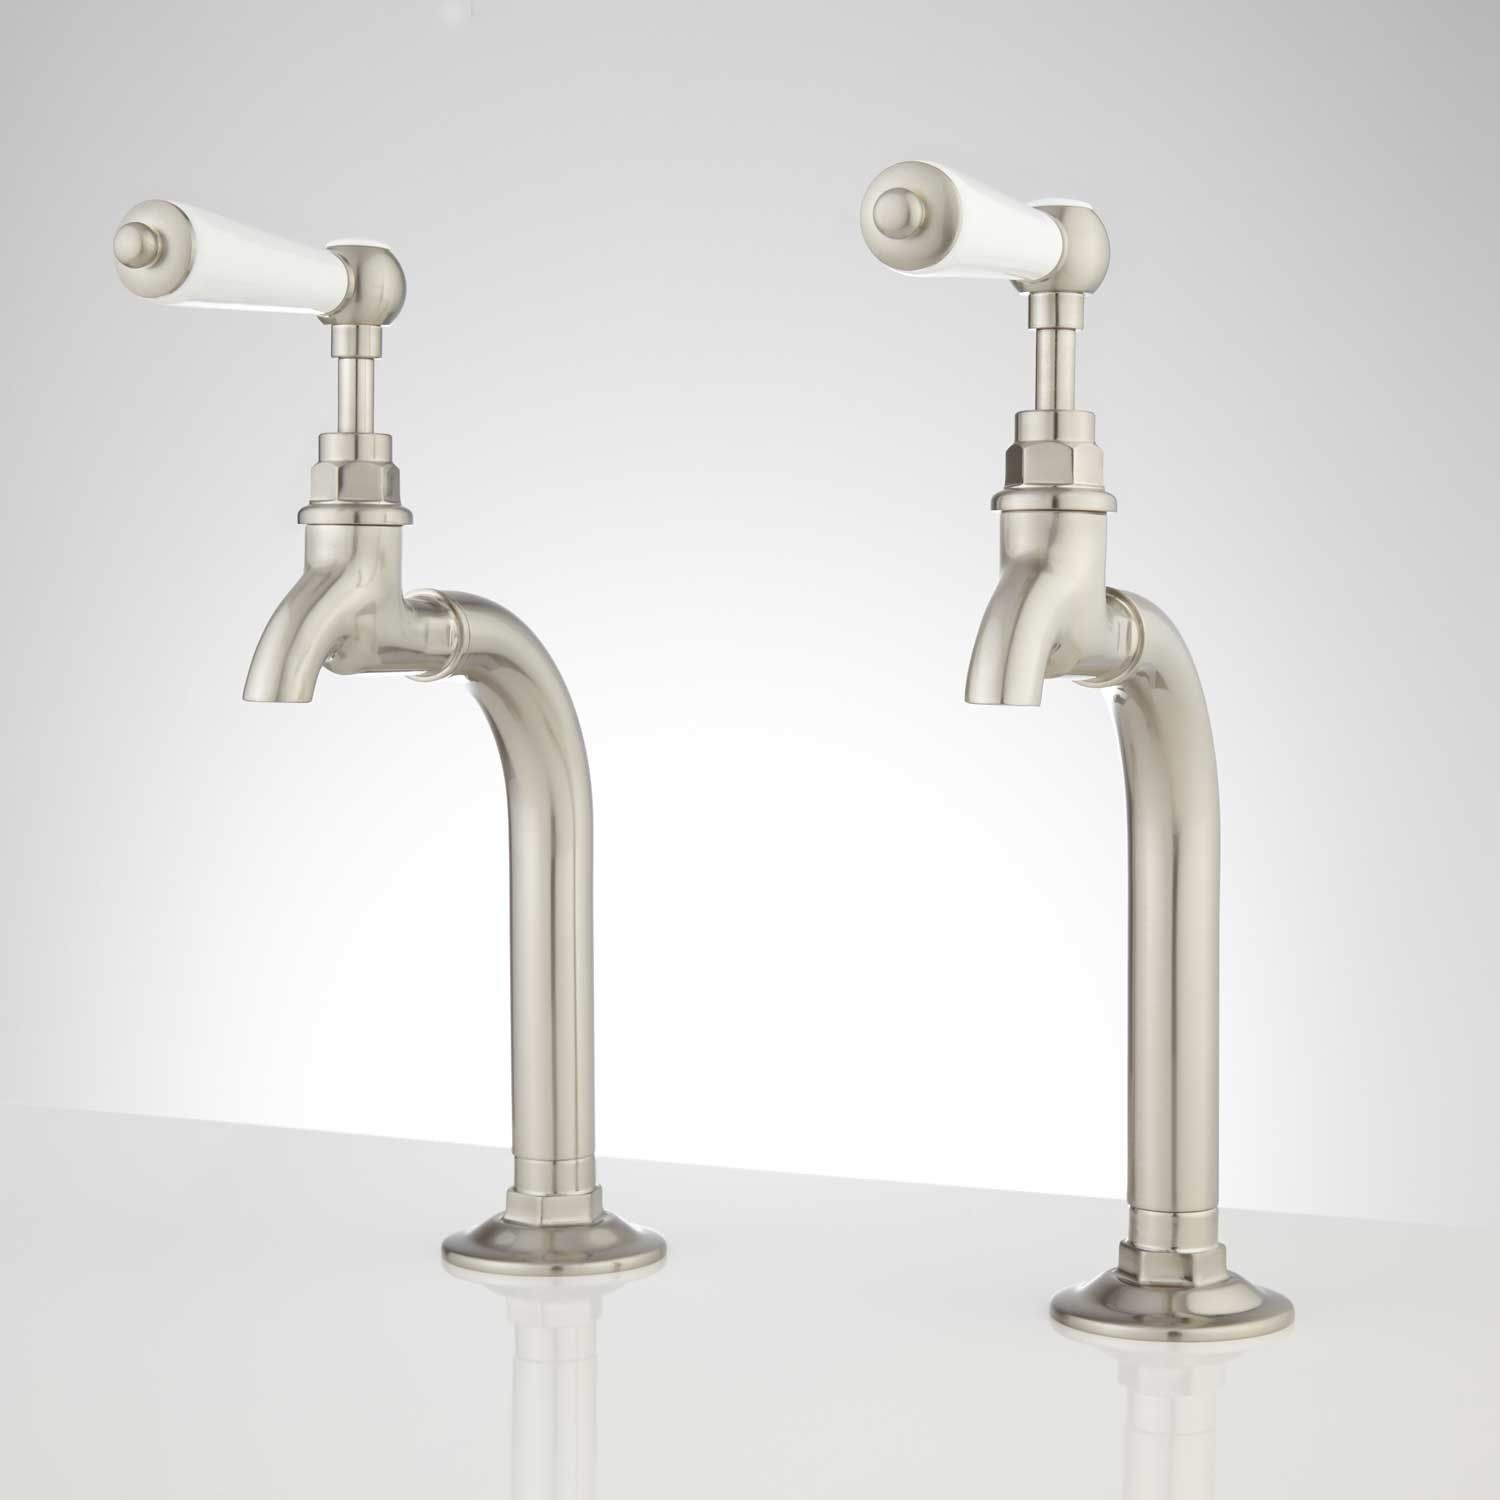 Rogers+Kitchen+Basin+Faucet+with+Porcelain+Lever+Handles. These ...